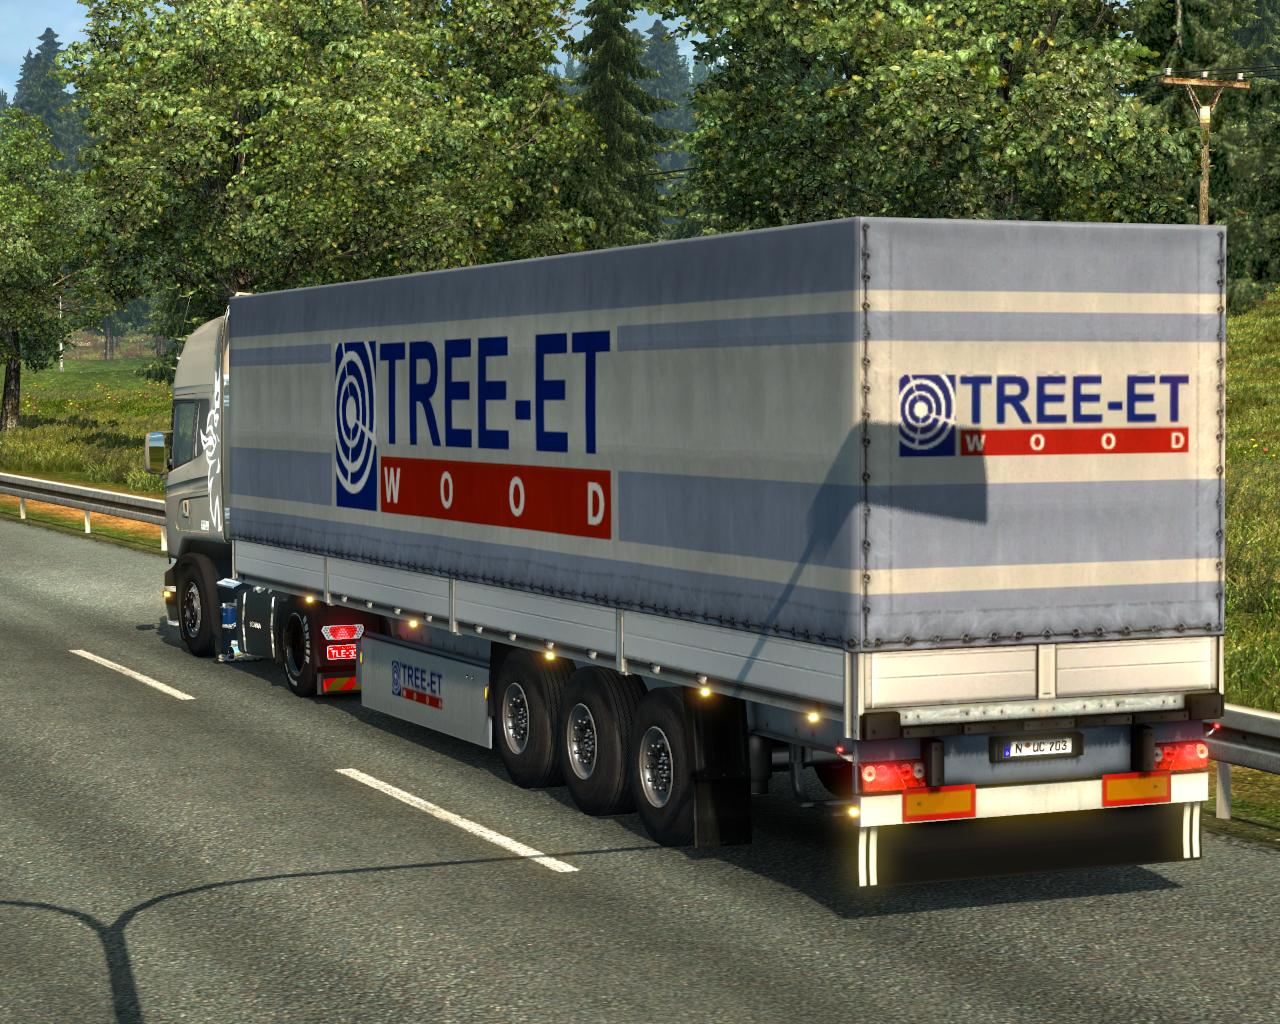 Euro truck simulator 2 mods daf xf 105 james s hislop pictures to pin -  Ets 2 Mod Scania Streamline Modifiye Paketi V1 0 Jpg Pictures To Pin Euro Truck Simulator 2 Mods Daf Xf 105 James S Hislop